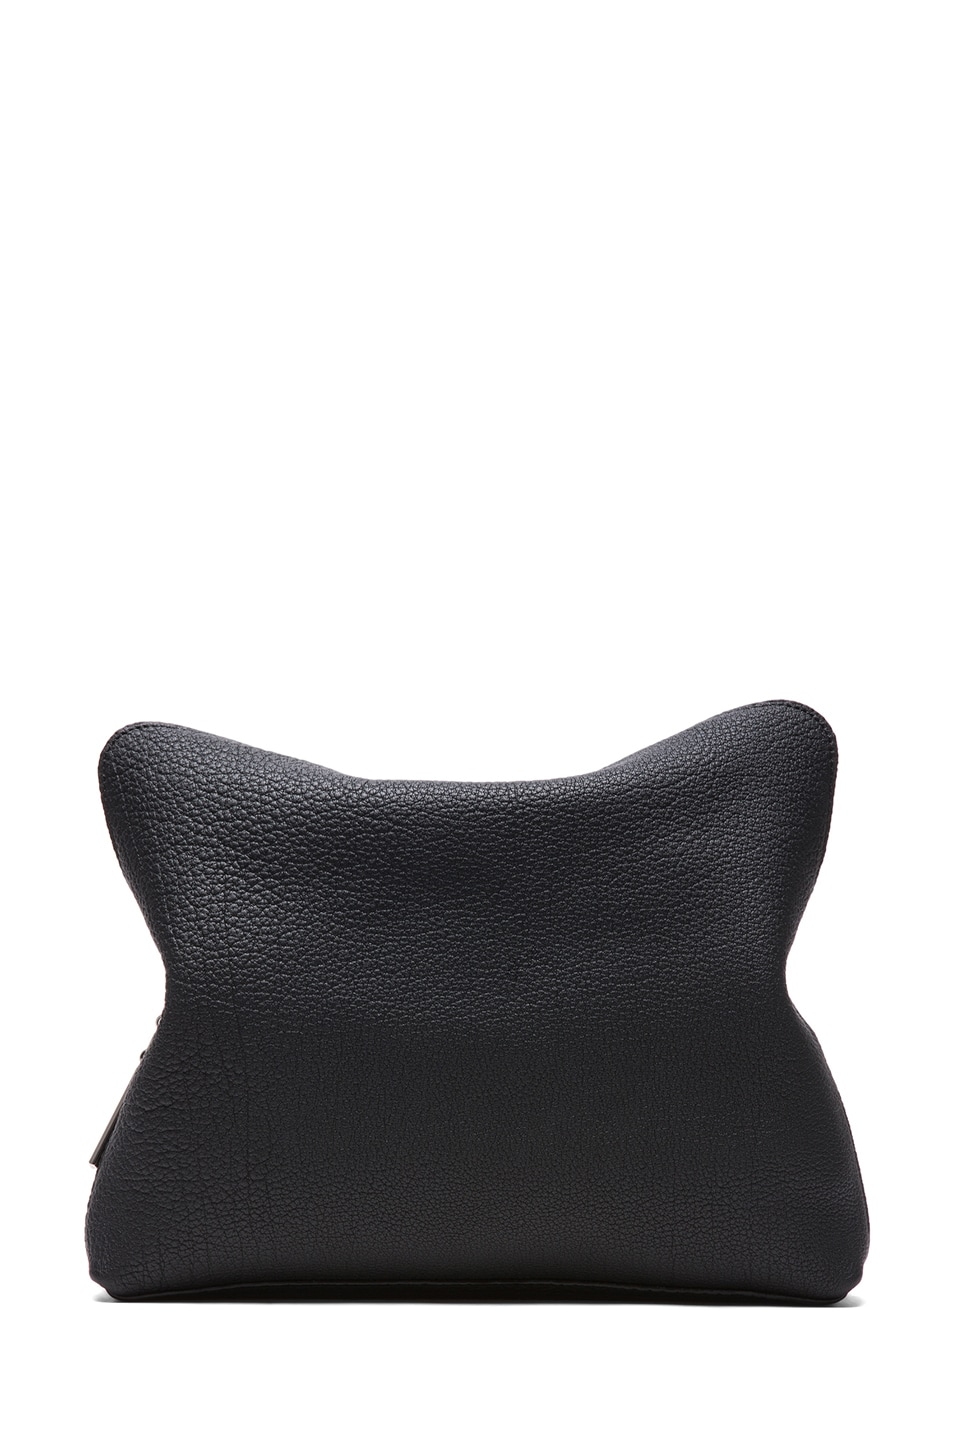 Image 1 of 3.1 phillip lim Medium 31 Minute Bag in Black